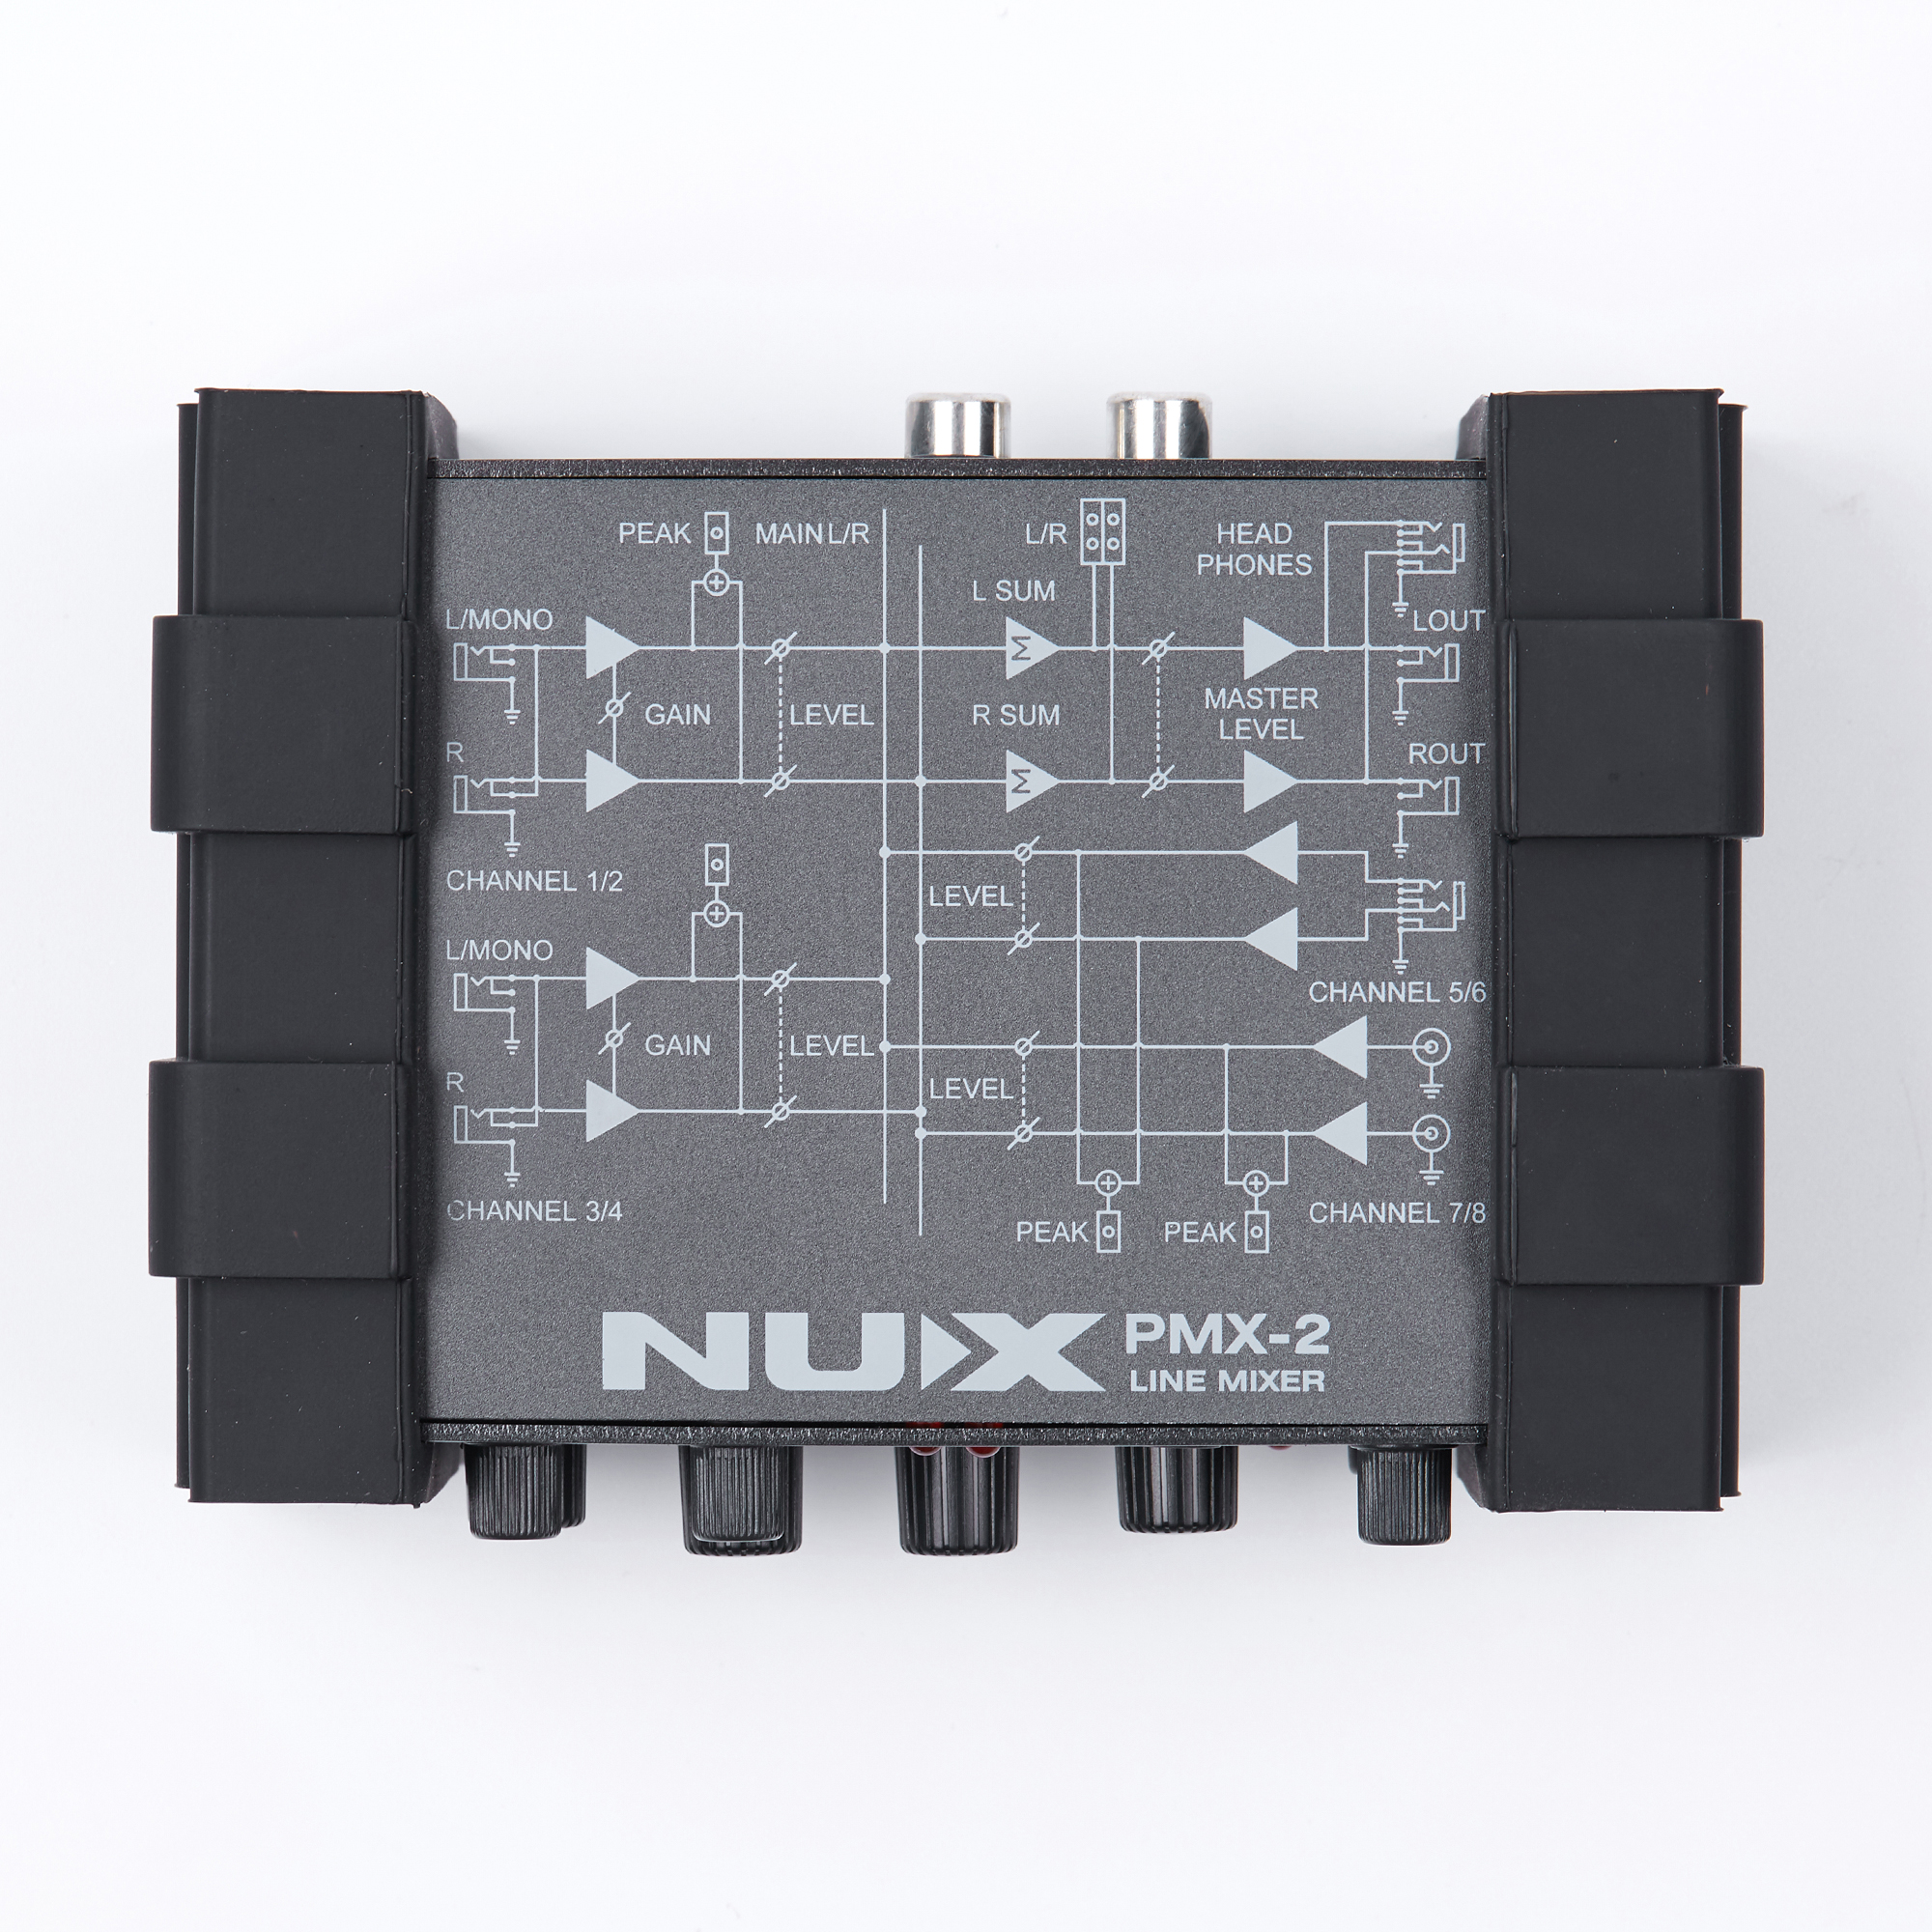 Gain Control 8 Inputs and 2 Outputs NUX PMX-2 Multi-Channel Mini Mixer 30 Musical Instruments Accessories for Guitar Bass Player сумки danny bear сумка